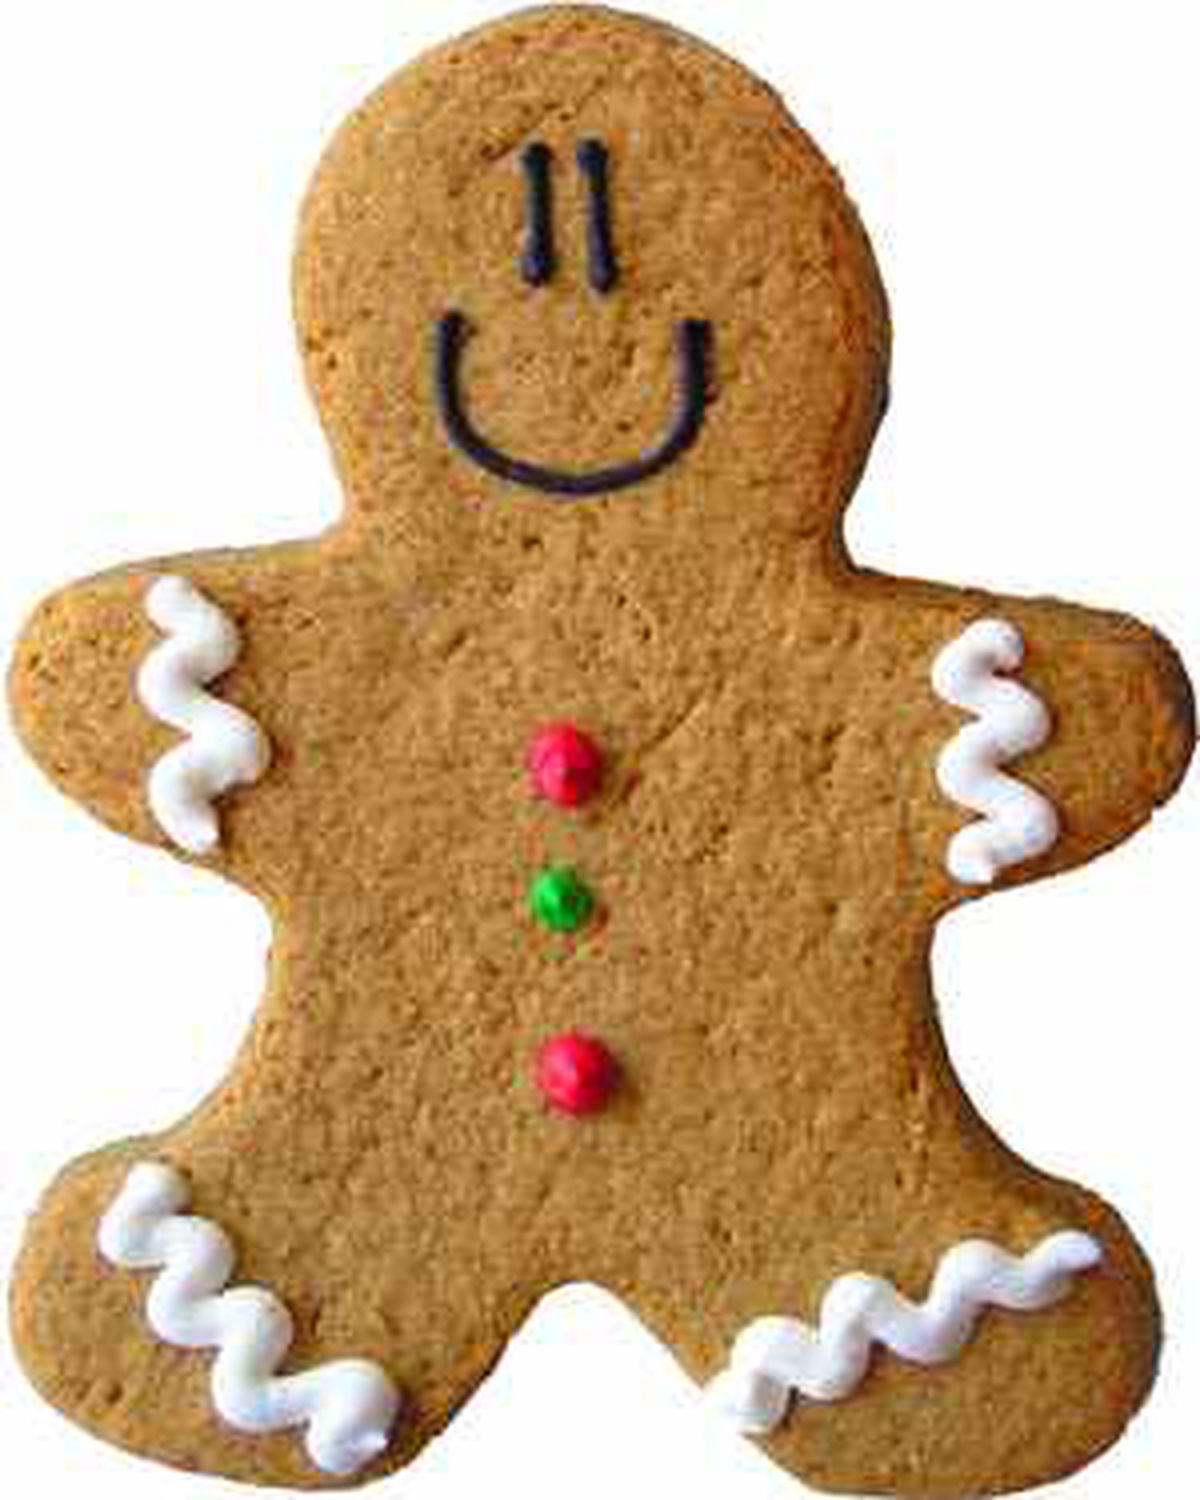 Move to rip up Market Drayton gingerbread icon 'takes the biscuit'